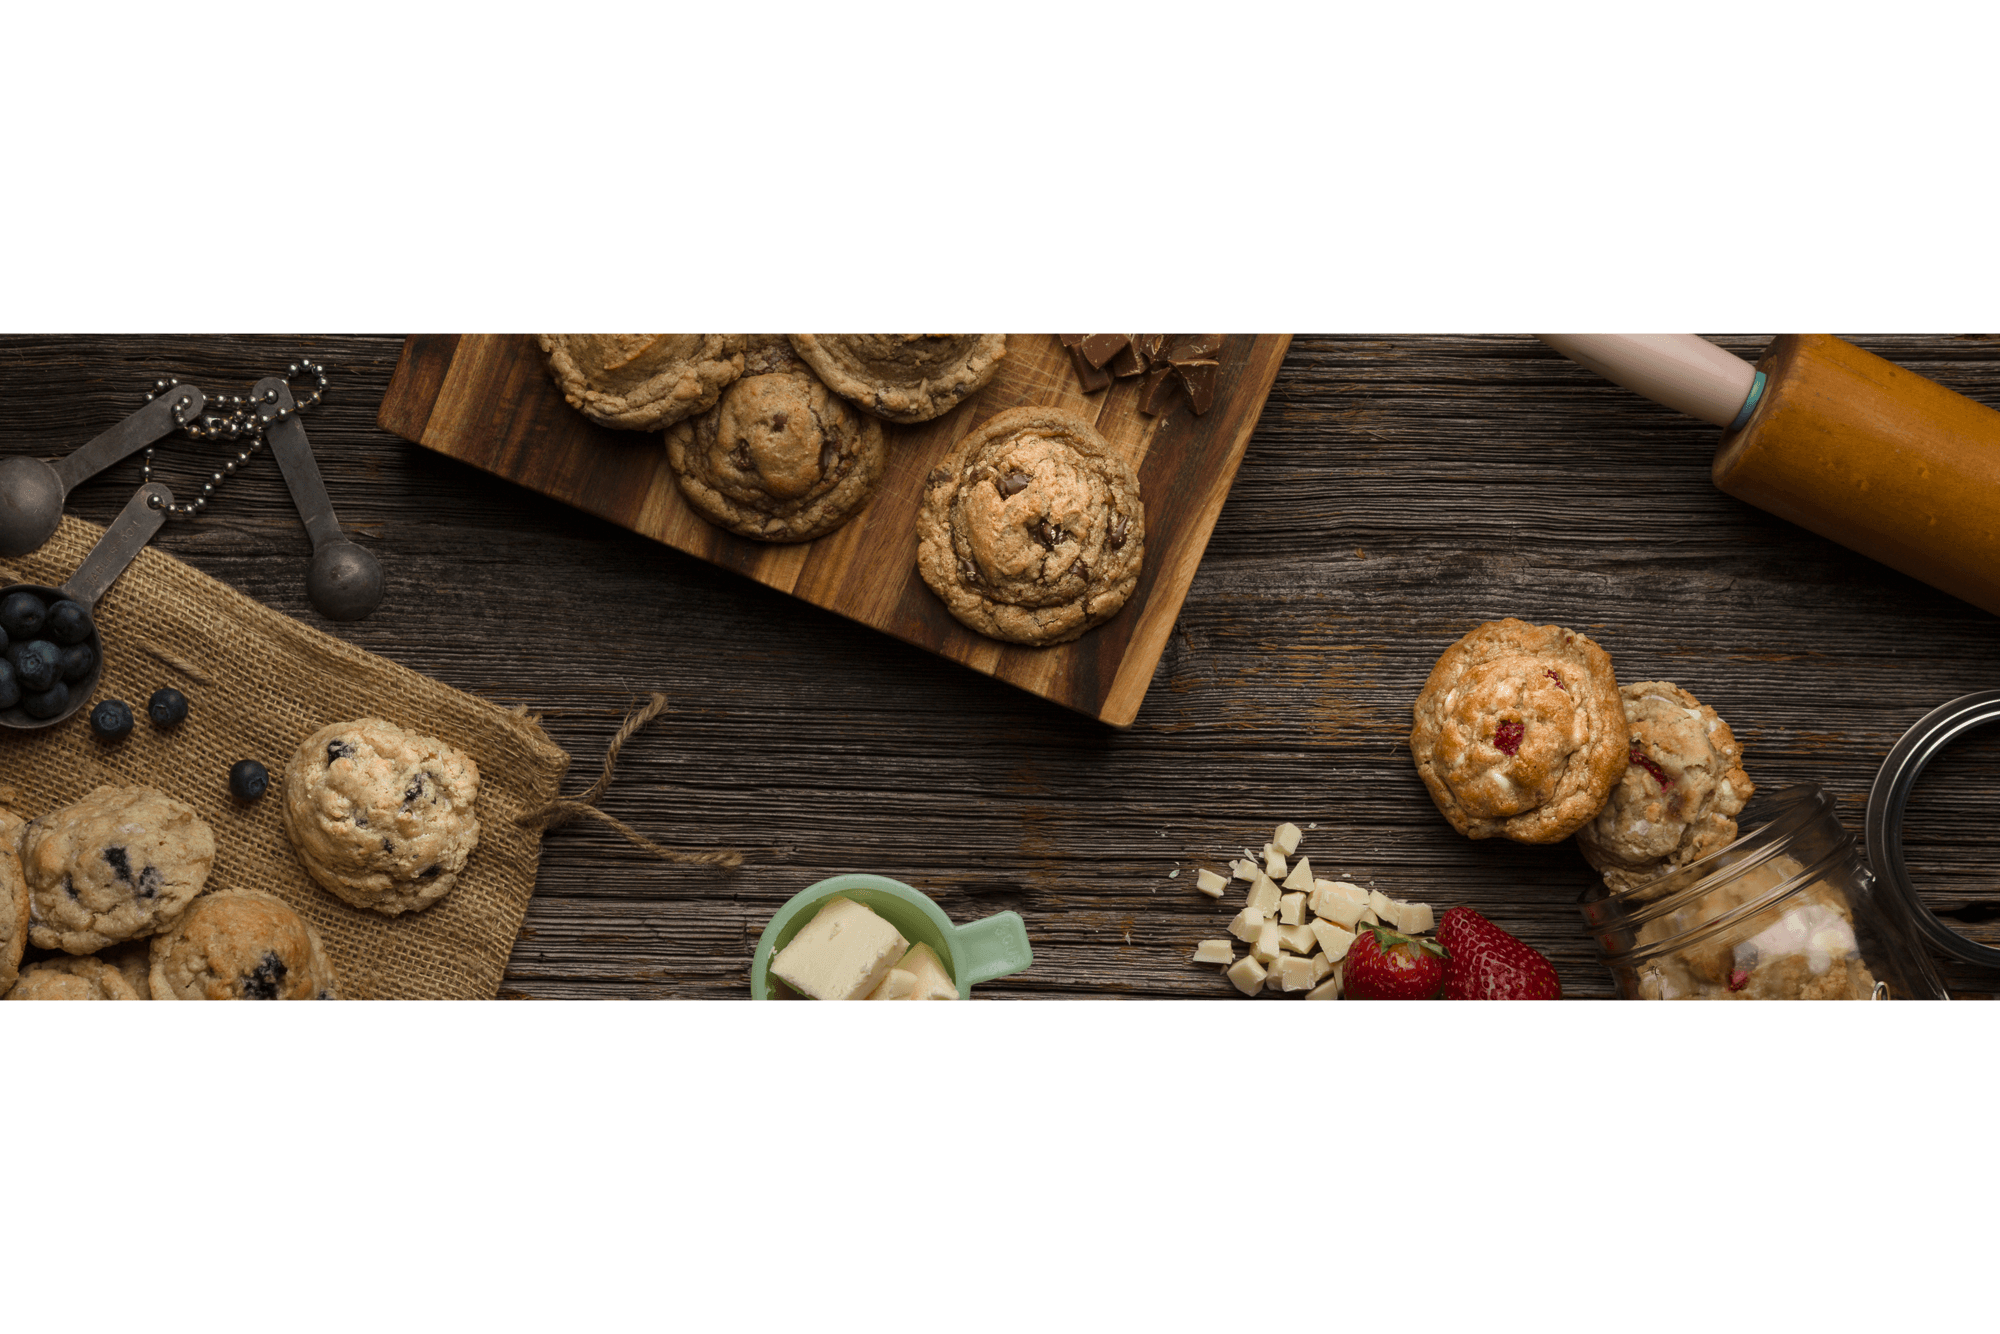 Knoxville food photographer